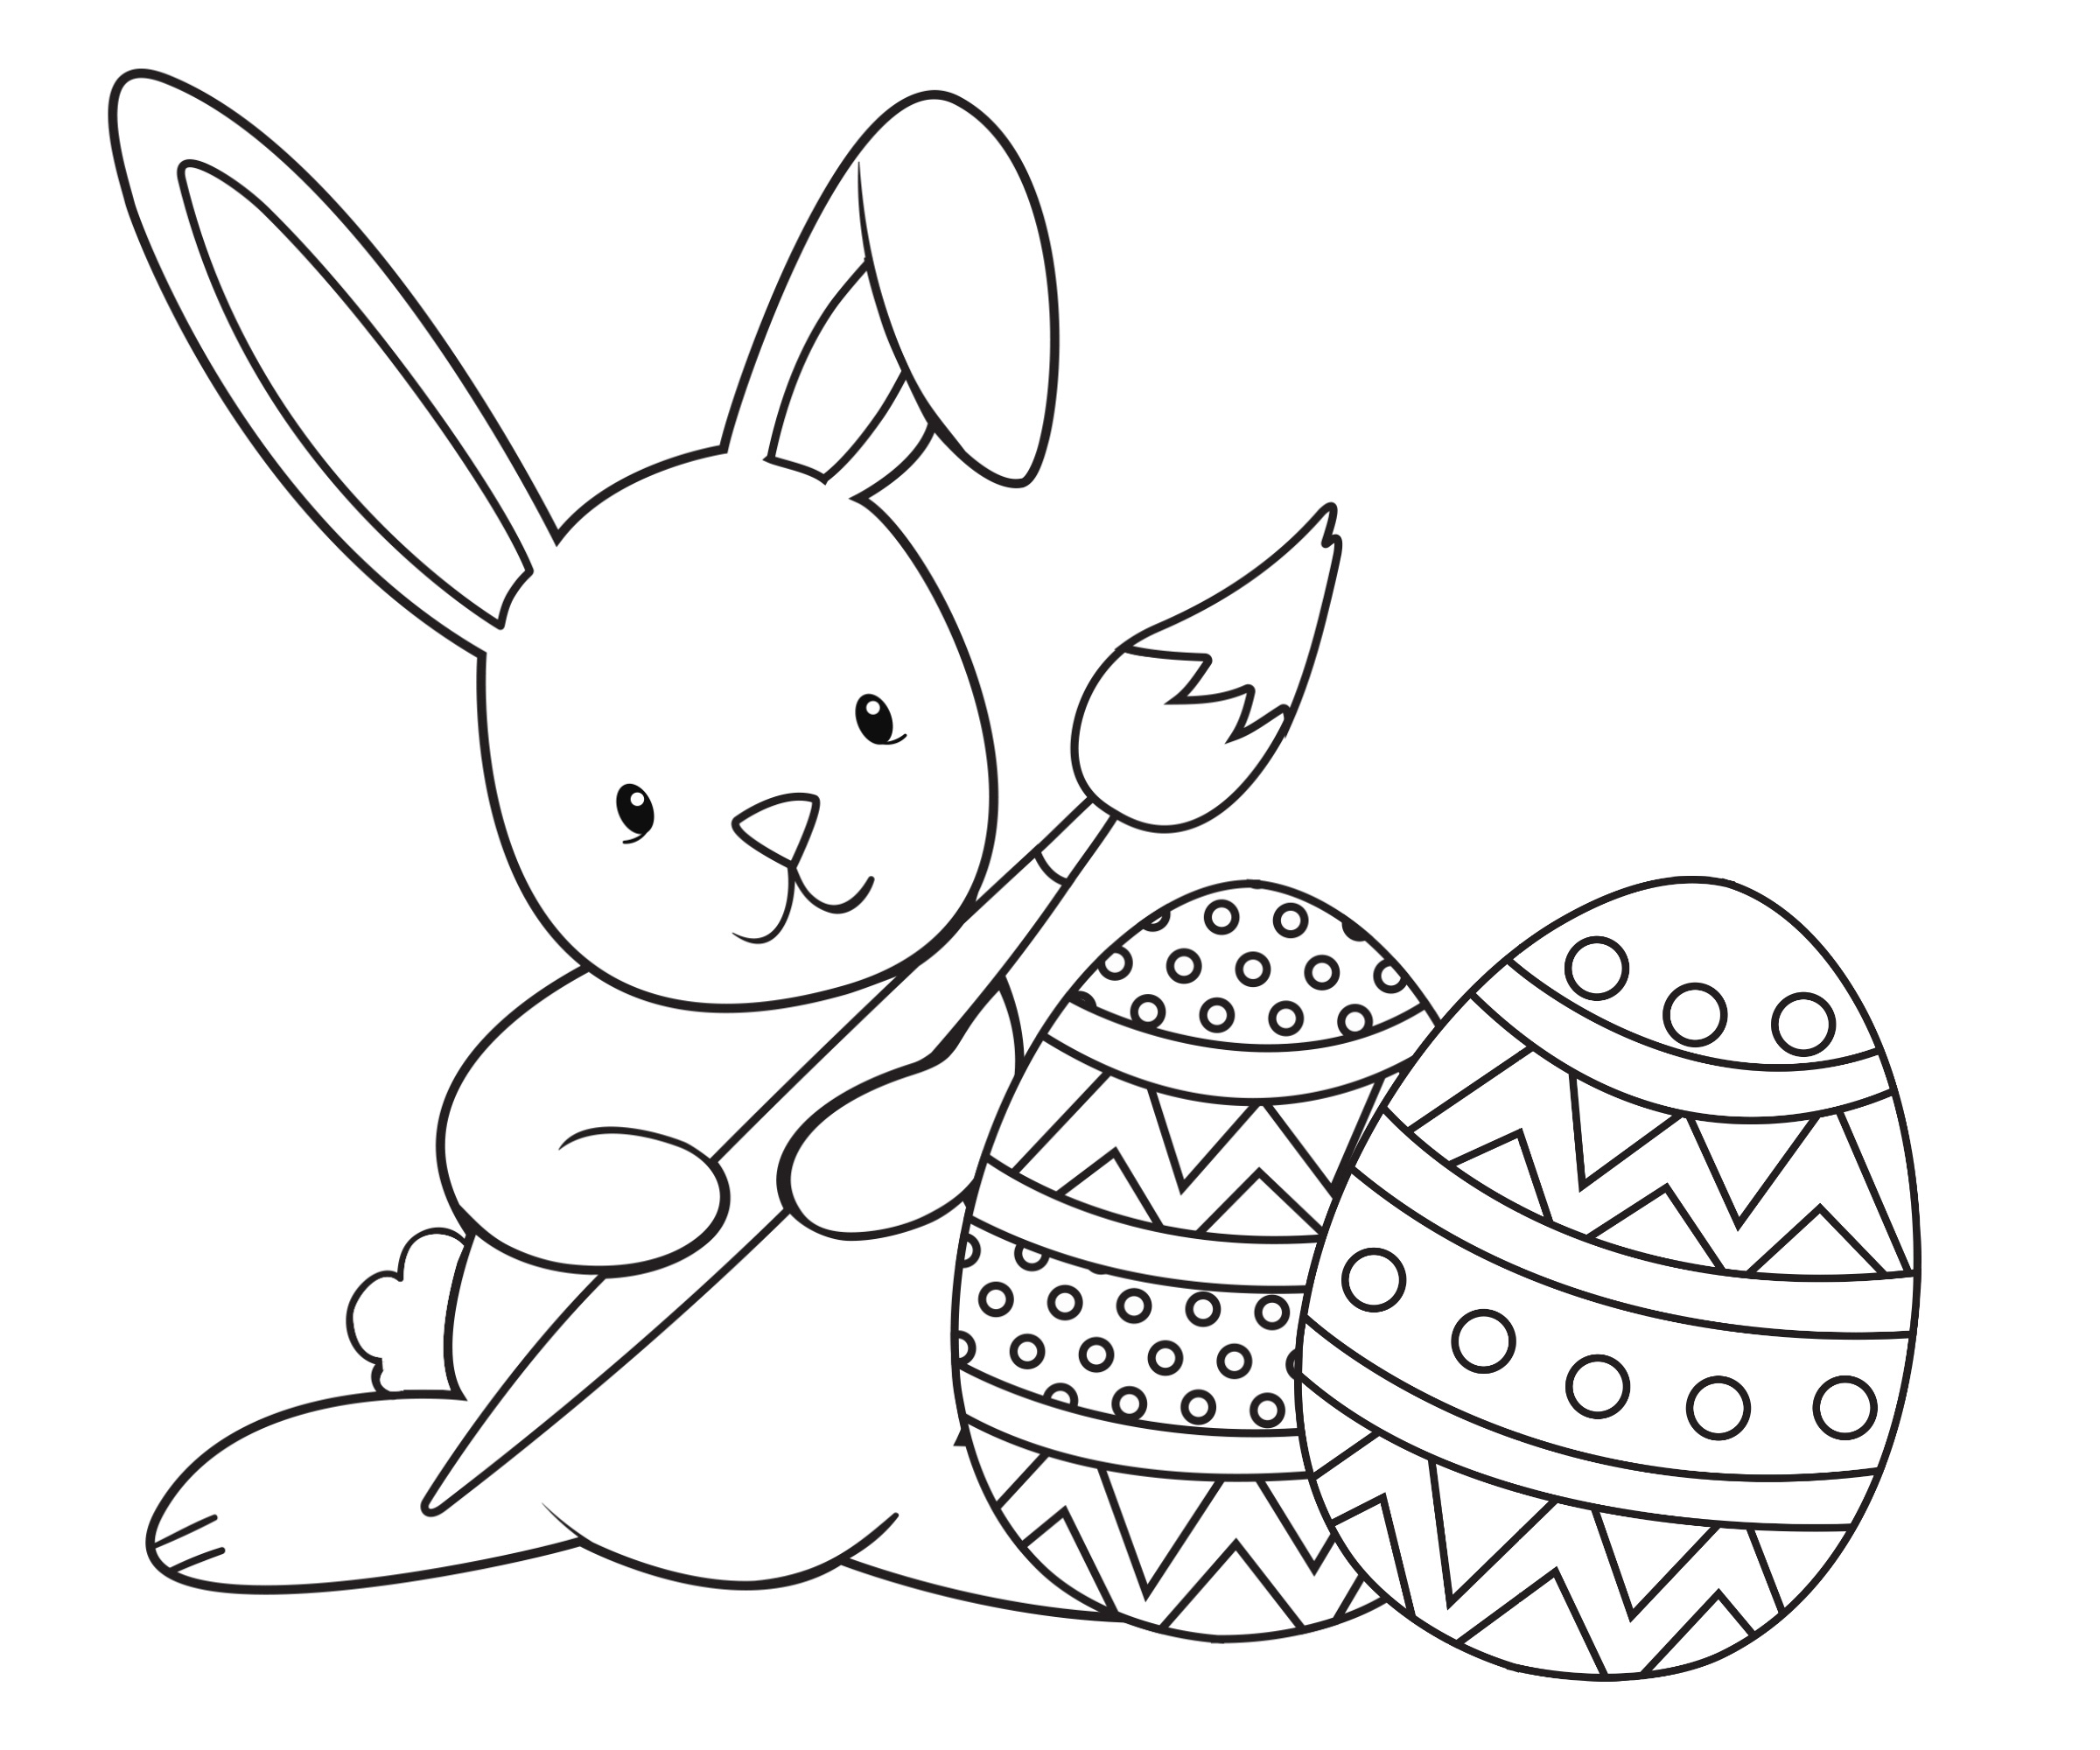 Easter Coloring Pages For Kids - Crazy Little Projects - Free Printable Easter Colouring Sheets